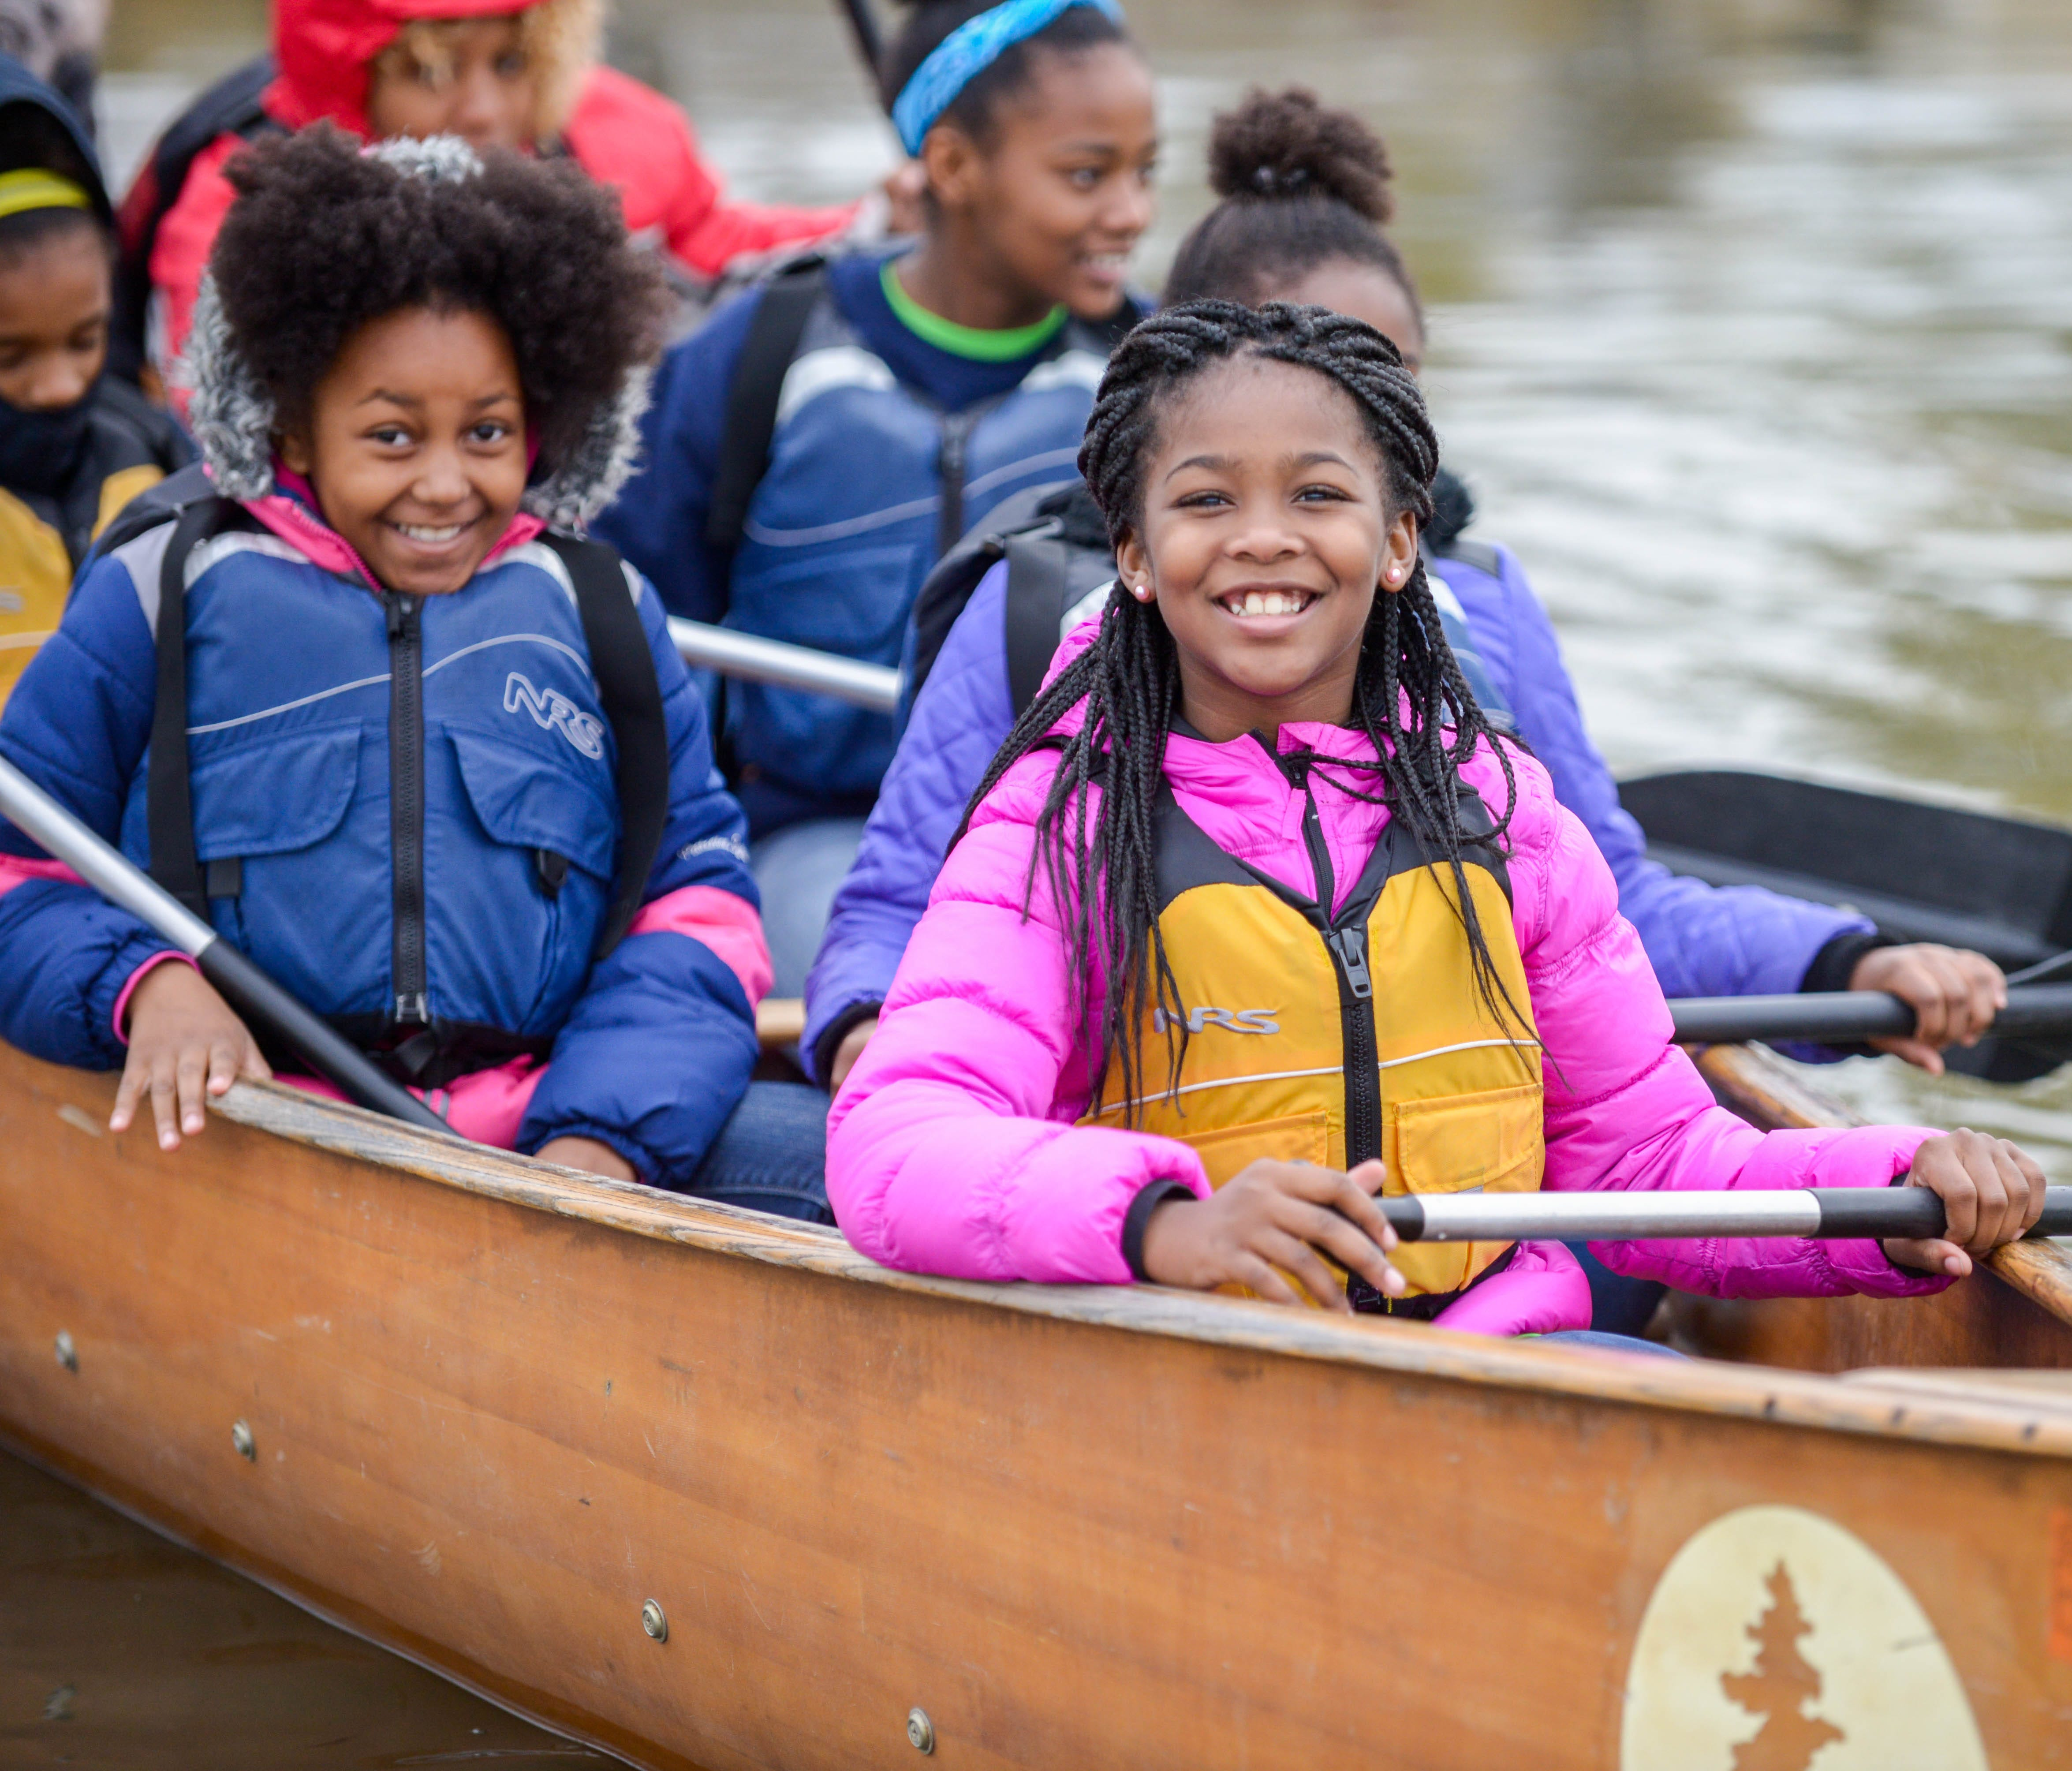 Buddy Bison students from Washington School for Girls paddle on the Anacostia River (MD).